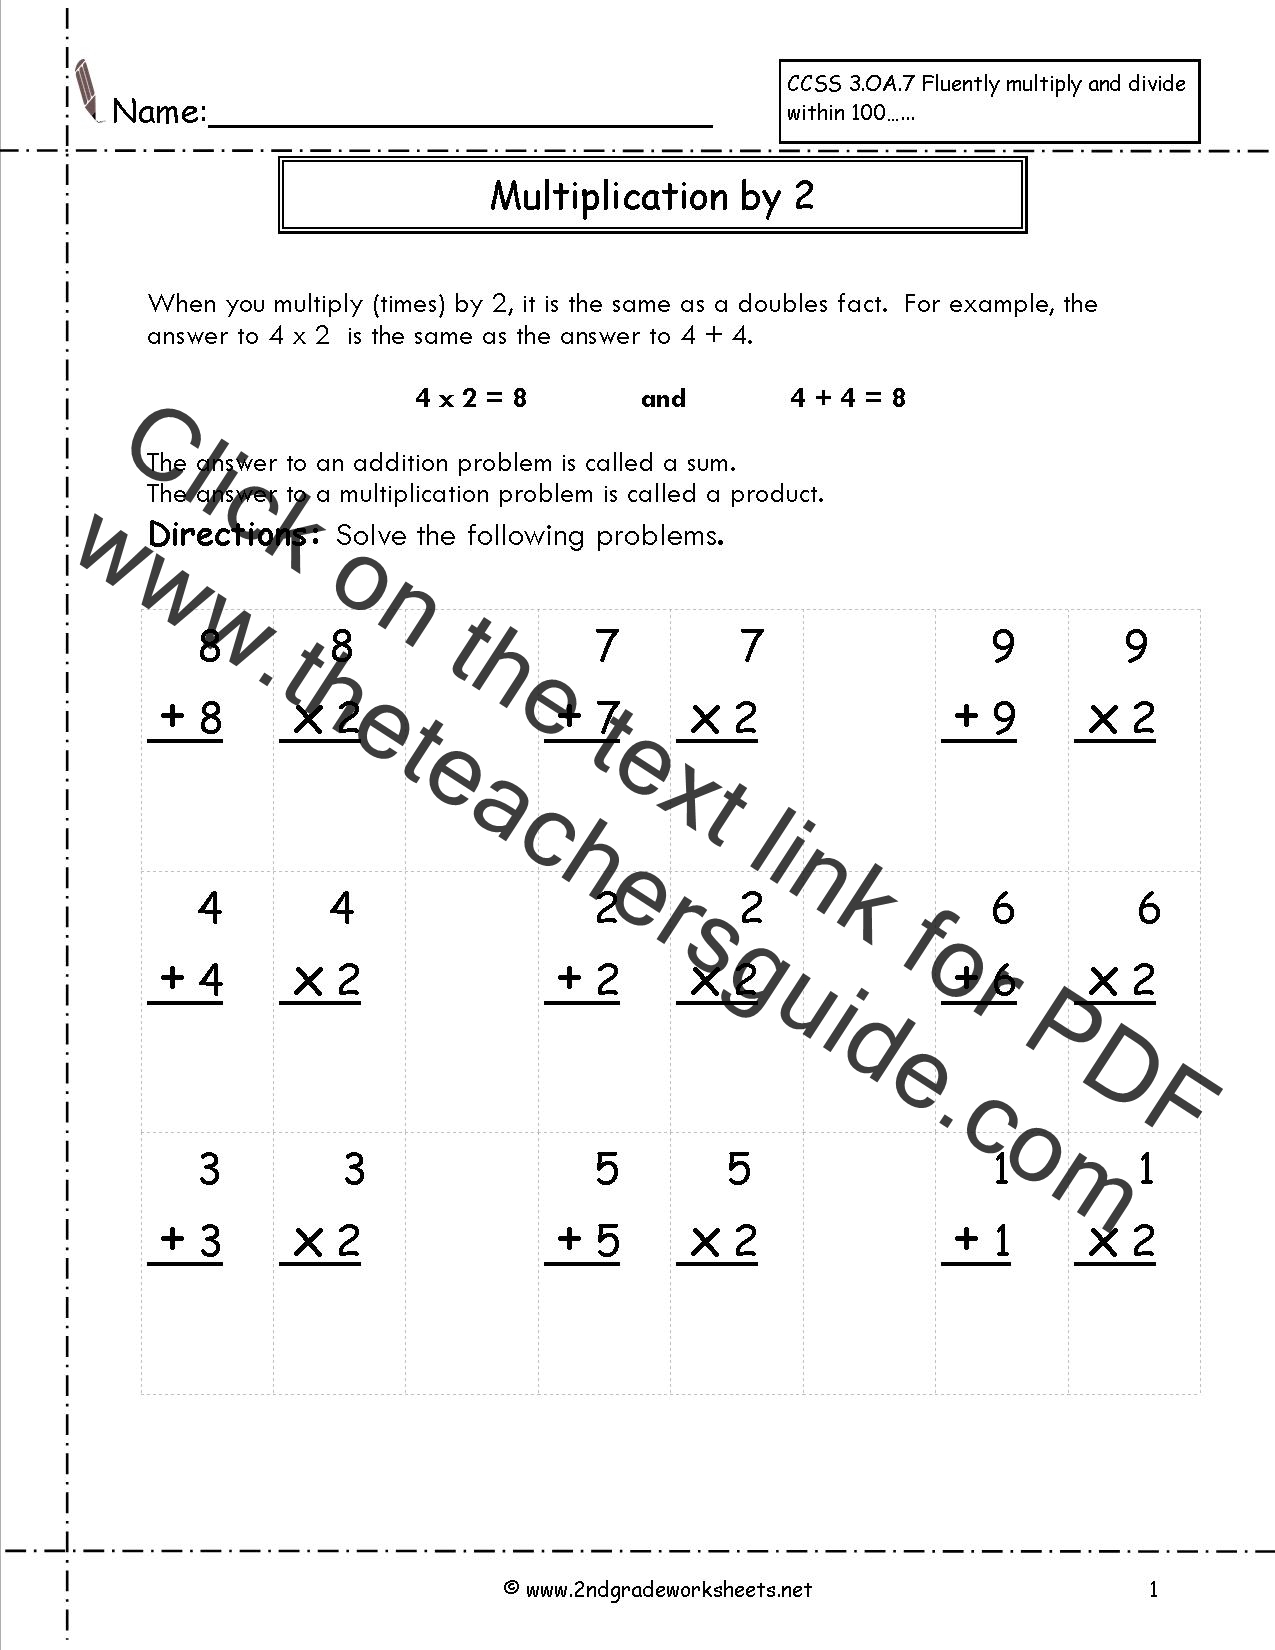 Worksheets 2nd Grade Multiplication Worksheets multiplication worksheets and printouts by two with doubles worksheet